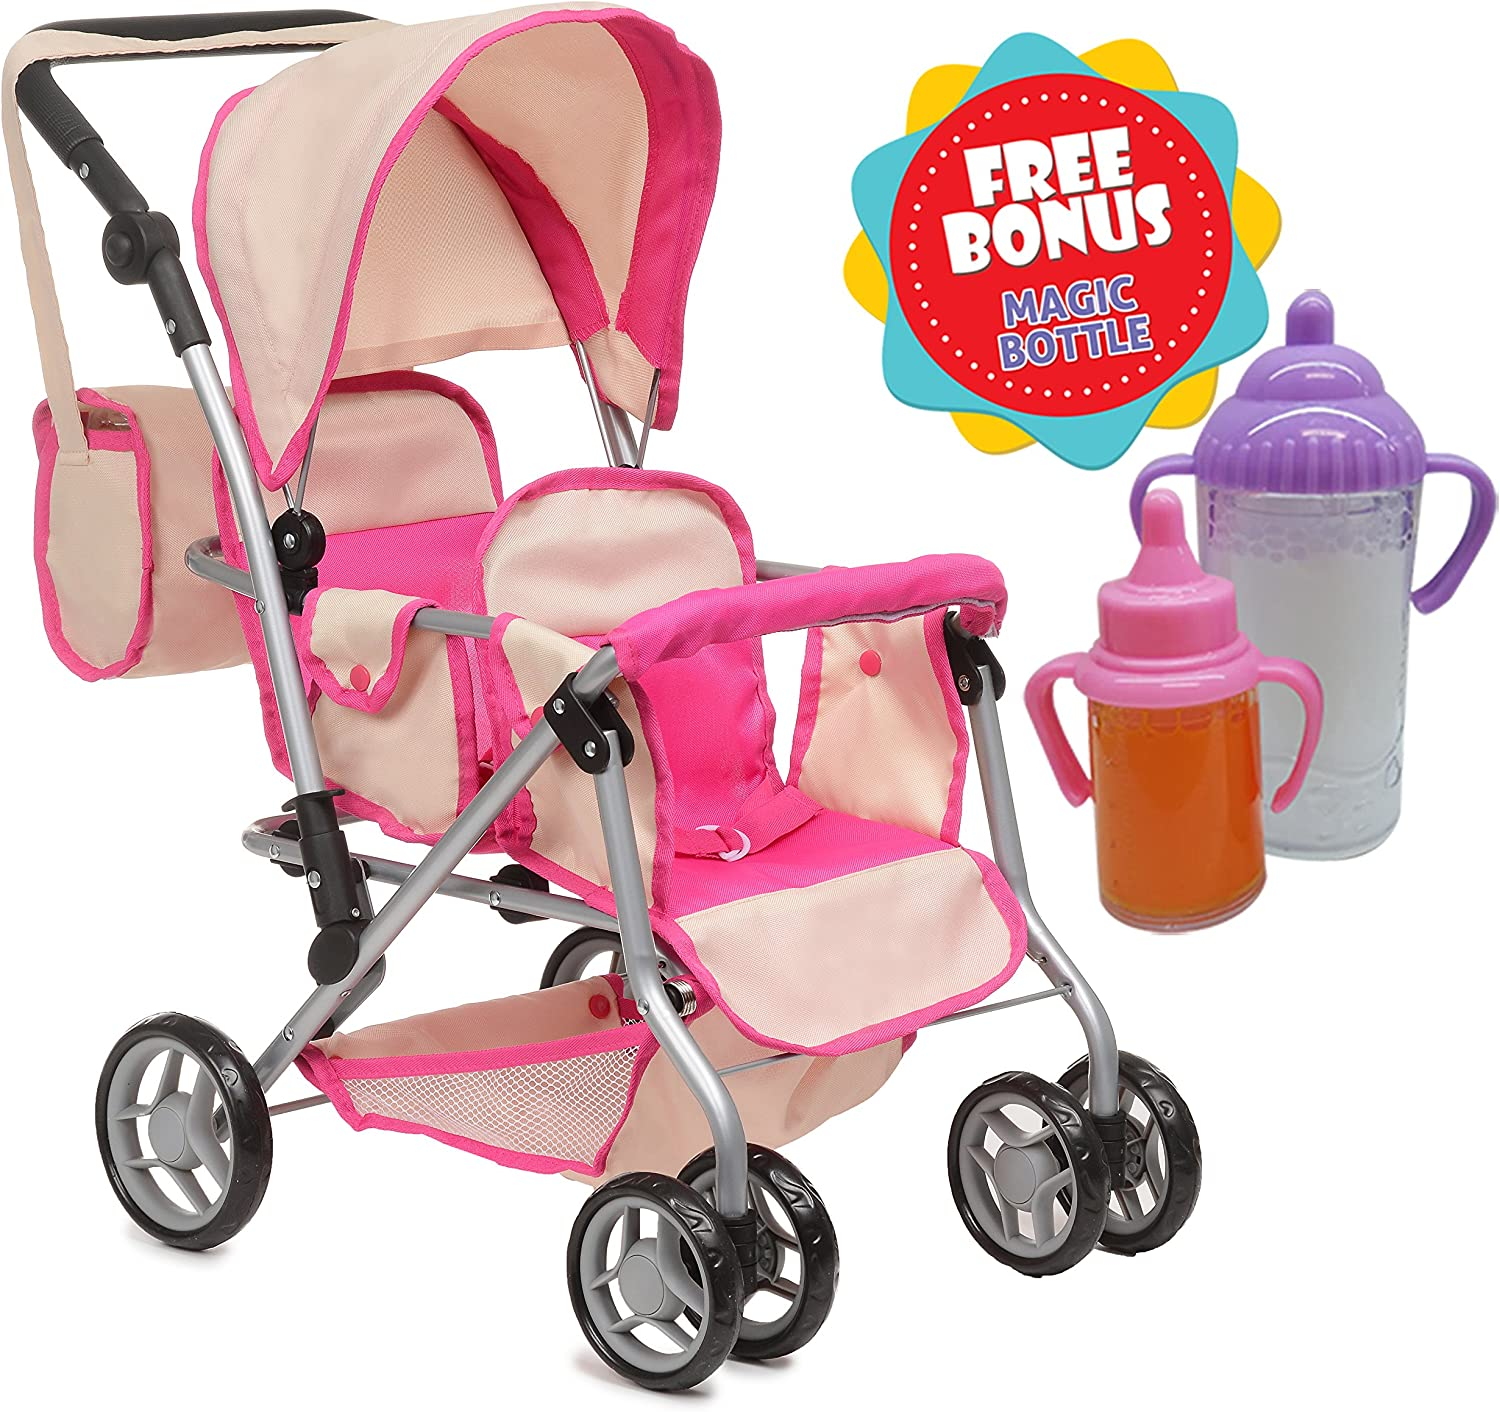 Exquisite Buggy, Twin Doll Stroller with Diaper Bag and Swivel Wheels-Soft Pink & Off-White Design with 2 Free Magic Bottles